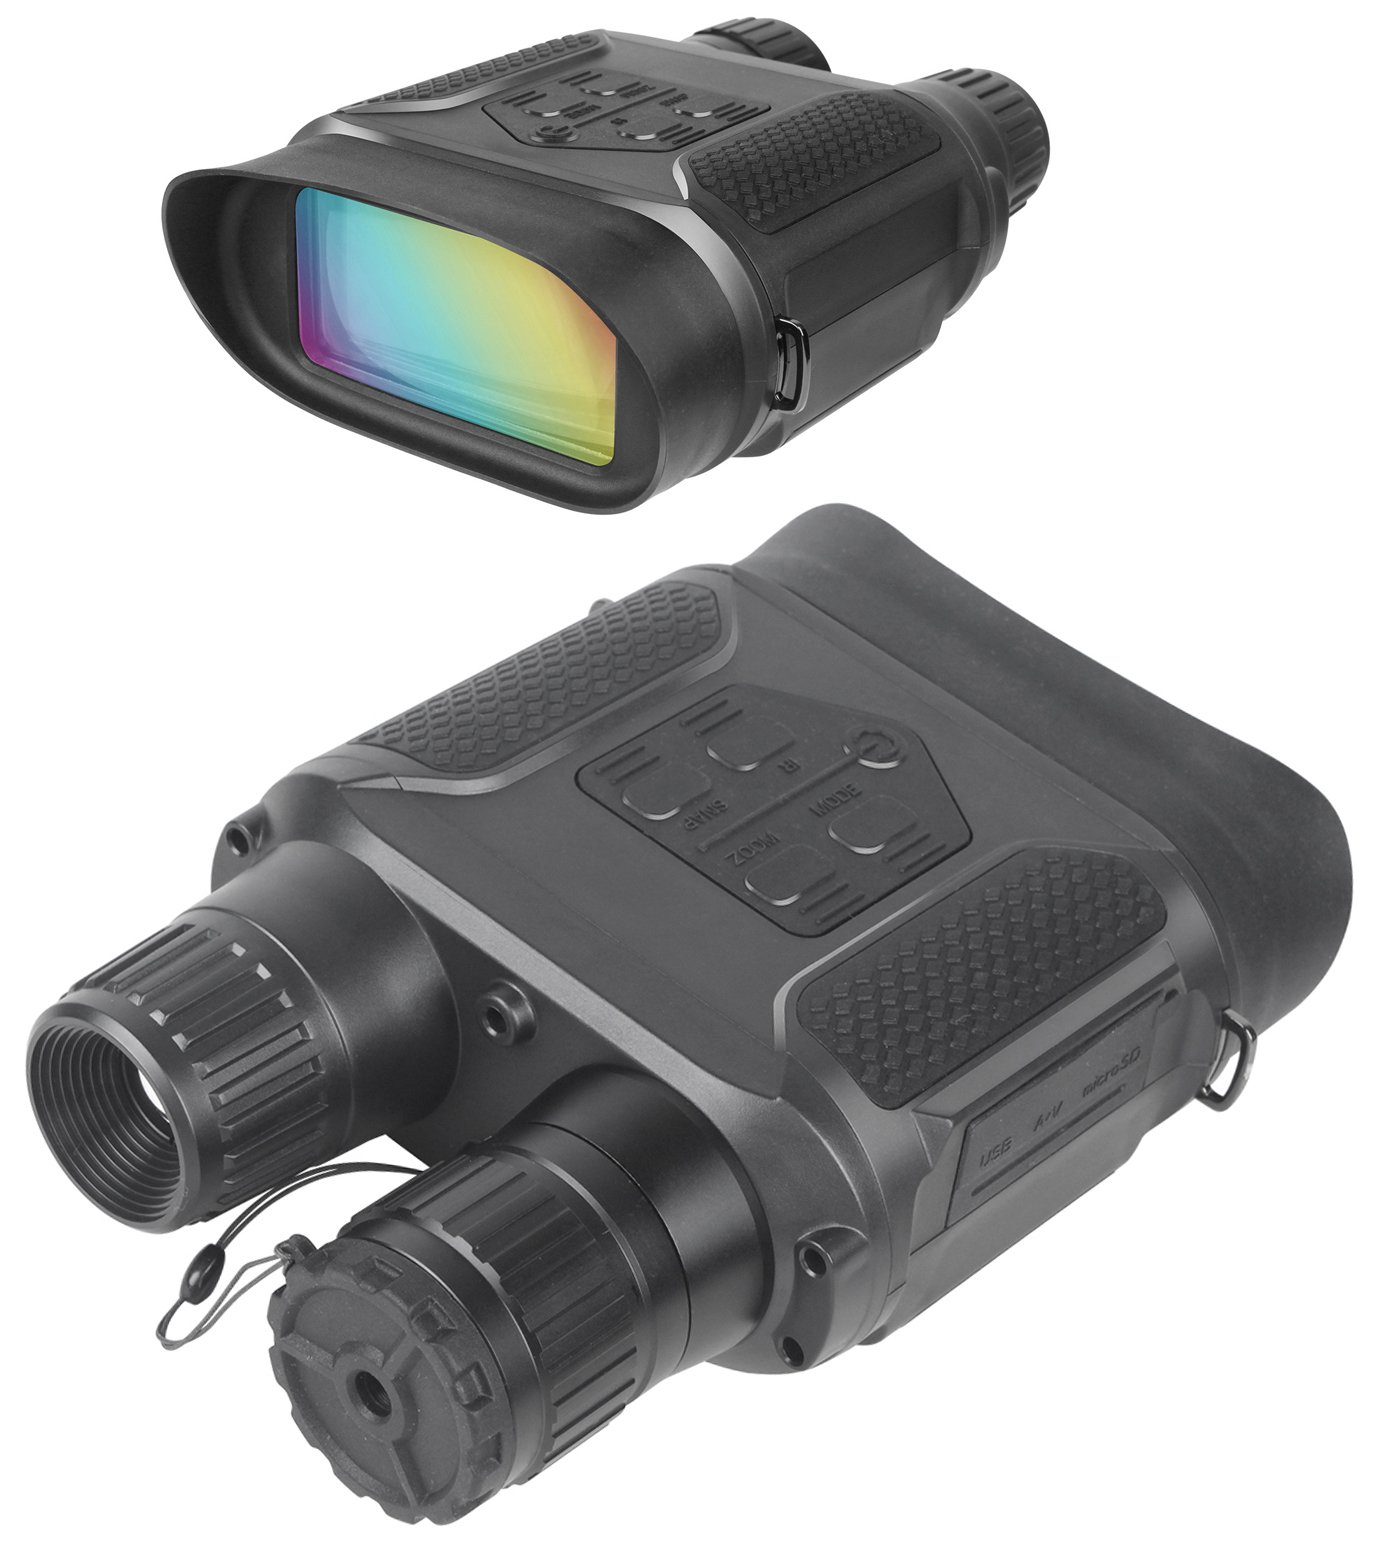 Digital Night Vision Binoculars for Hunting 7x31 with 2 inch TFT LCD HD Infrared IR Camera & Camcorder 1300ft/400M Viewing Range Takes 5mp Photo & 640p Video by Bestguarder